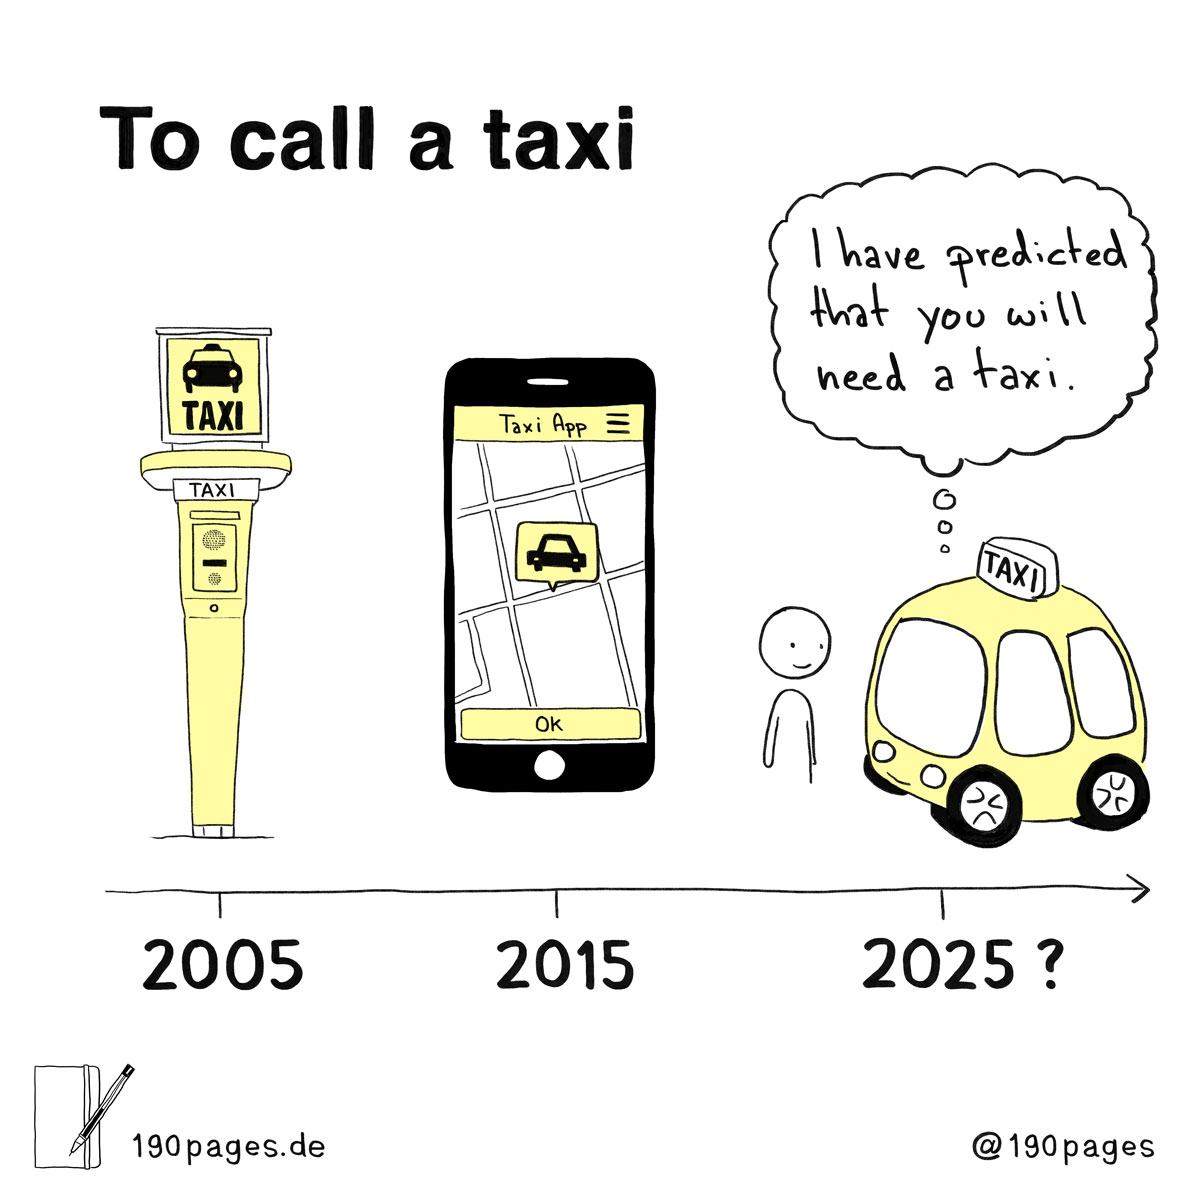 Sebastian Frederick Müller, Zebastian, 190 pages: ta call a taxi, mobility, prediction